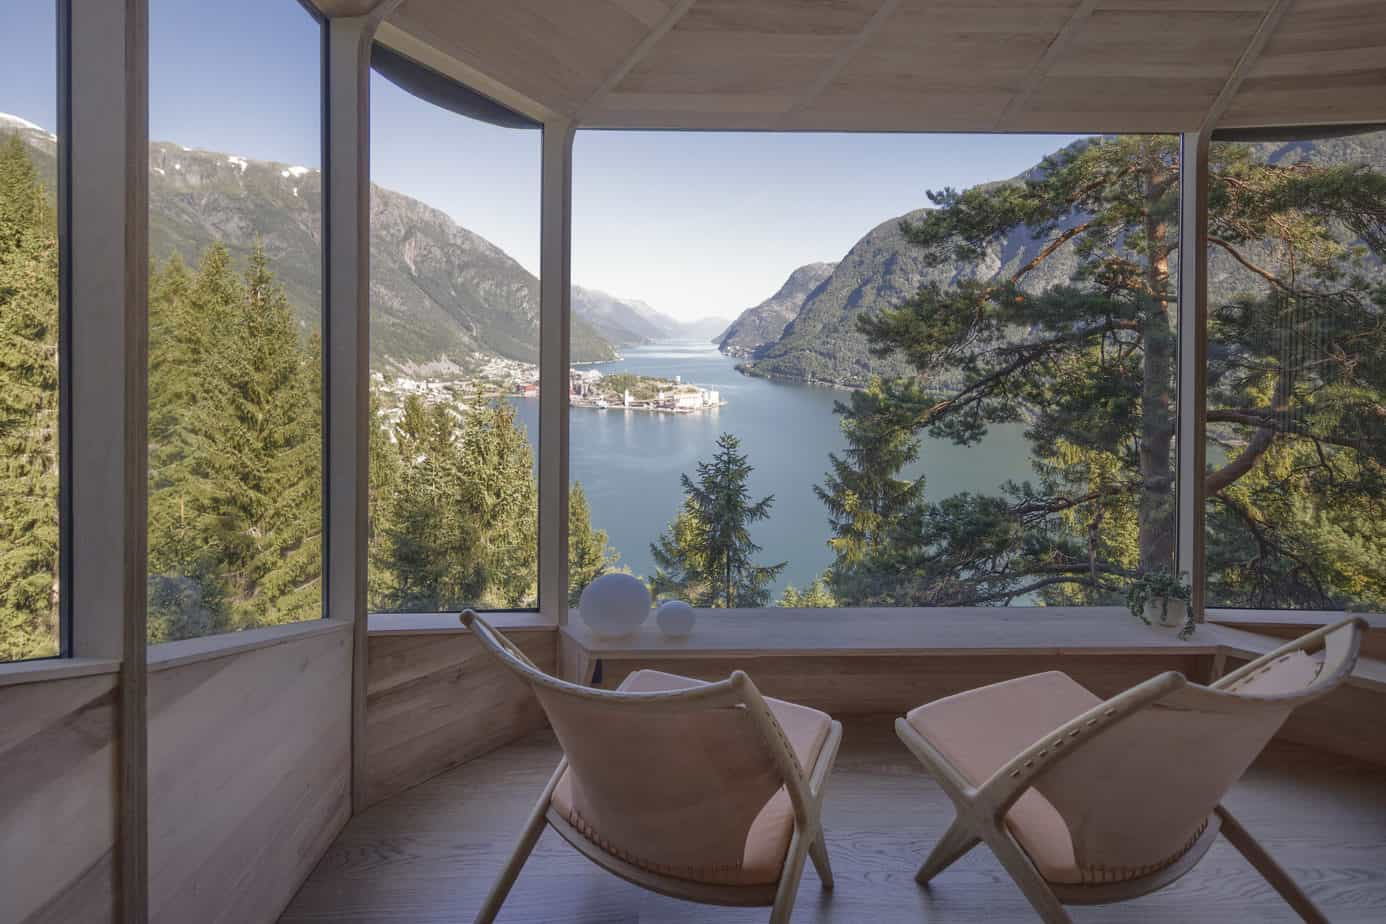 A view from inside the Woodnest cabin in Odda, Norway